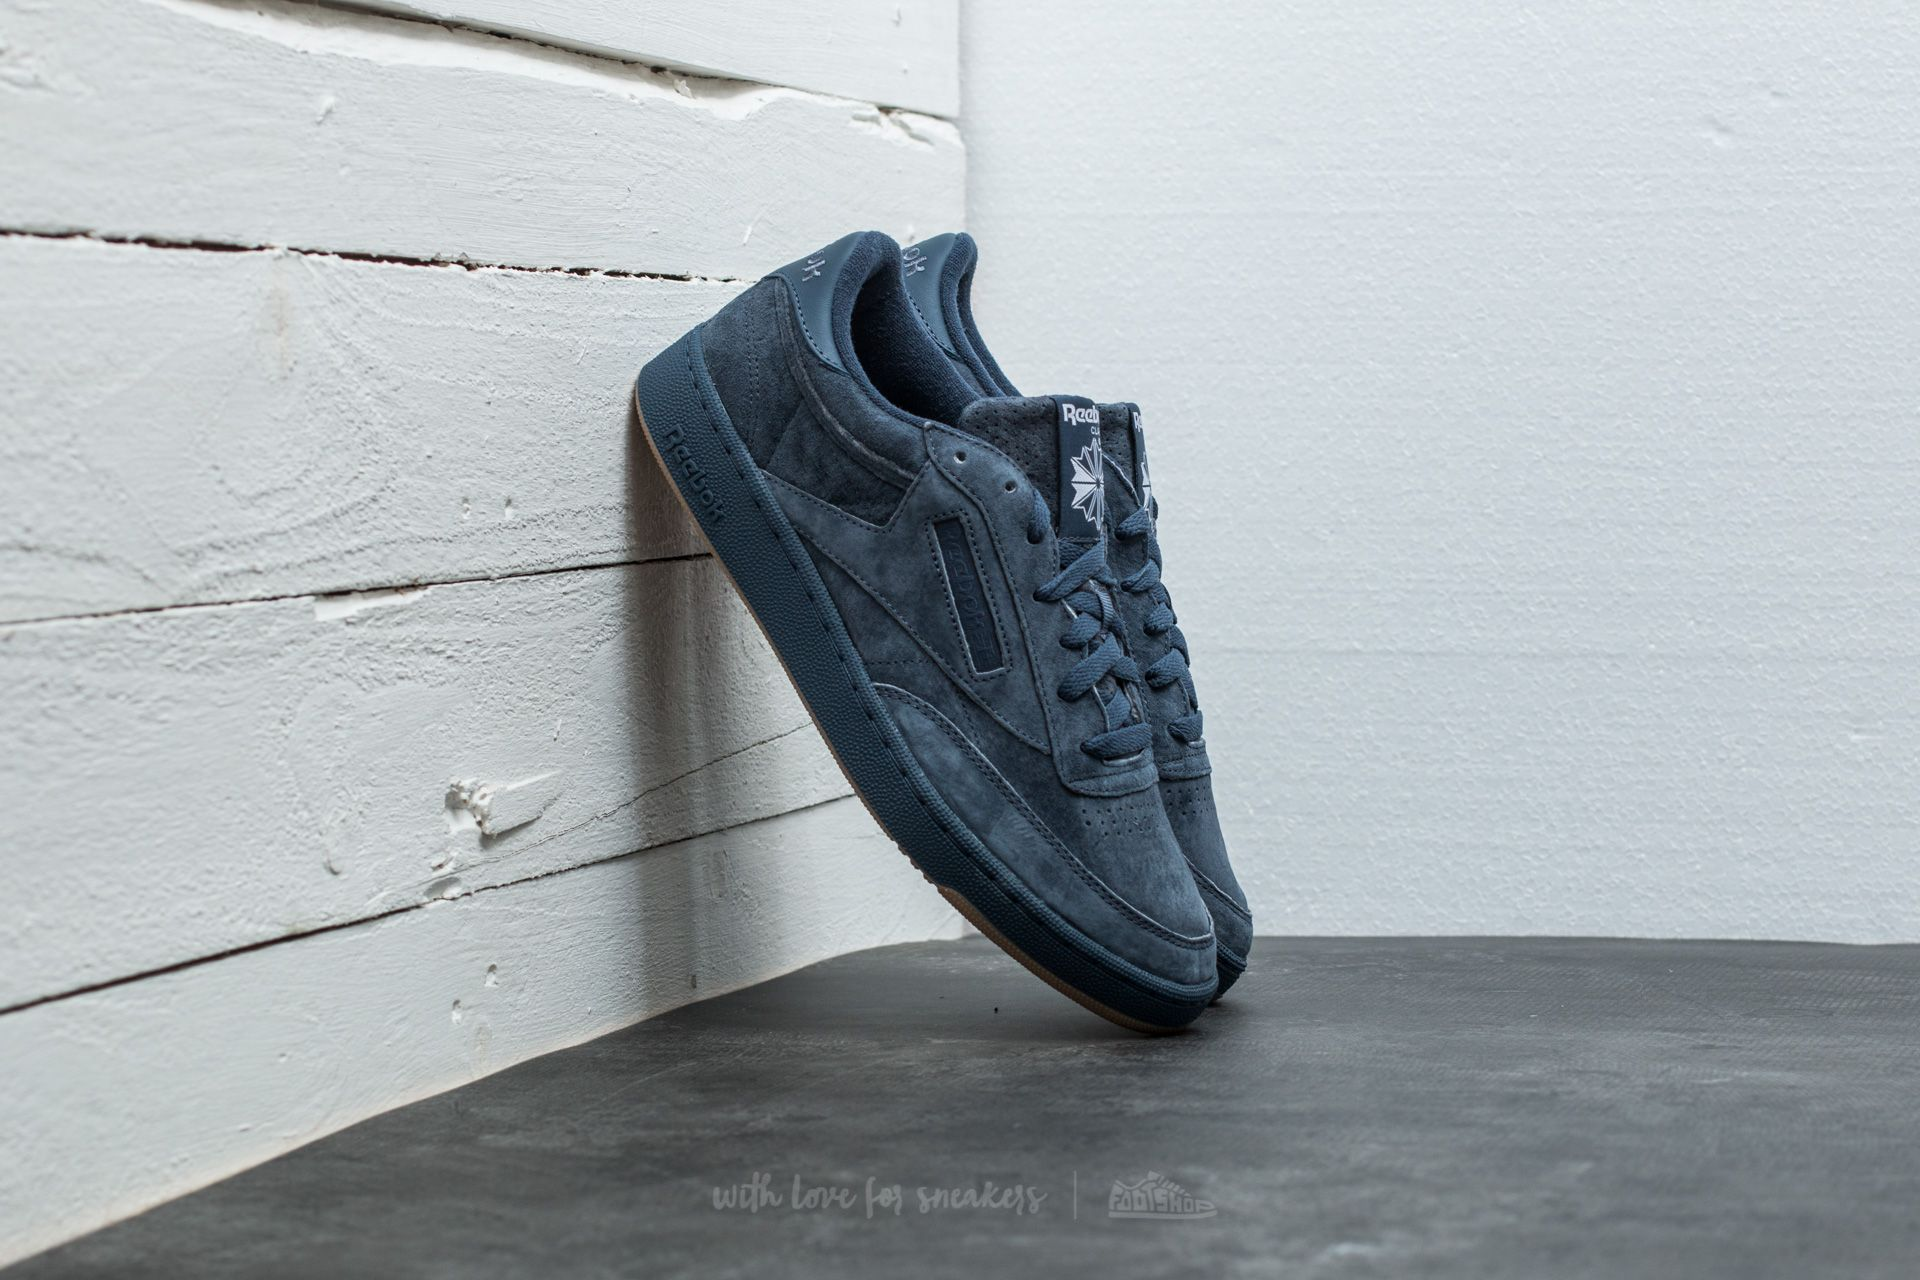 8b56e12b76839 Reebok Club C 85 Seasonal Gum Smoky Indigo  White-Gum